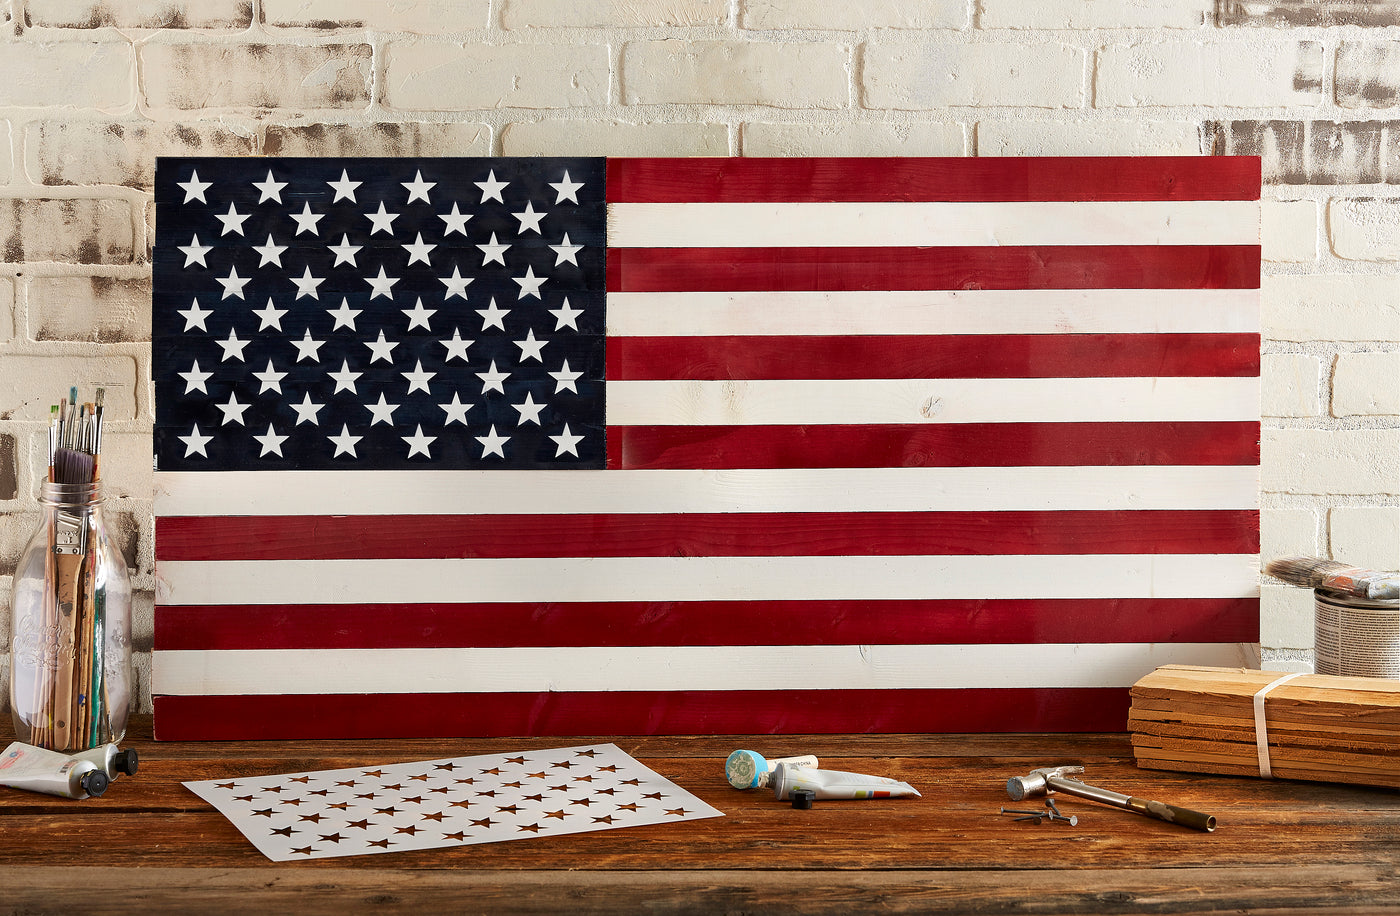 photo regarding American Flag Star Stencil Printable identified as Star Sector Templates for Craftsmen of AMERICAN Picket Flags